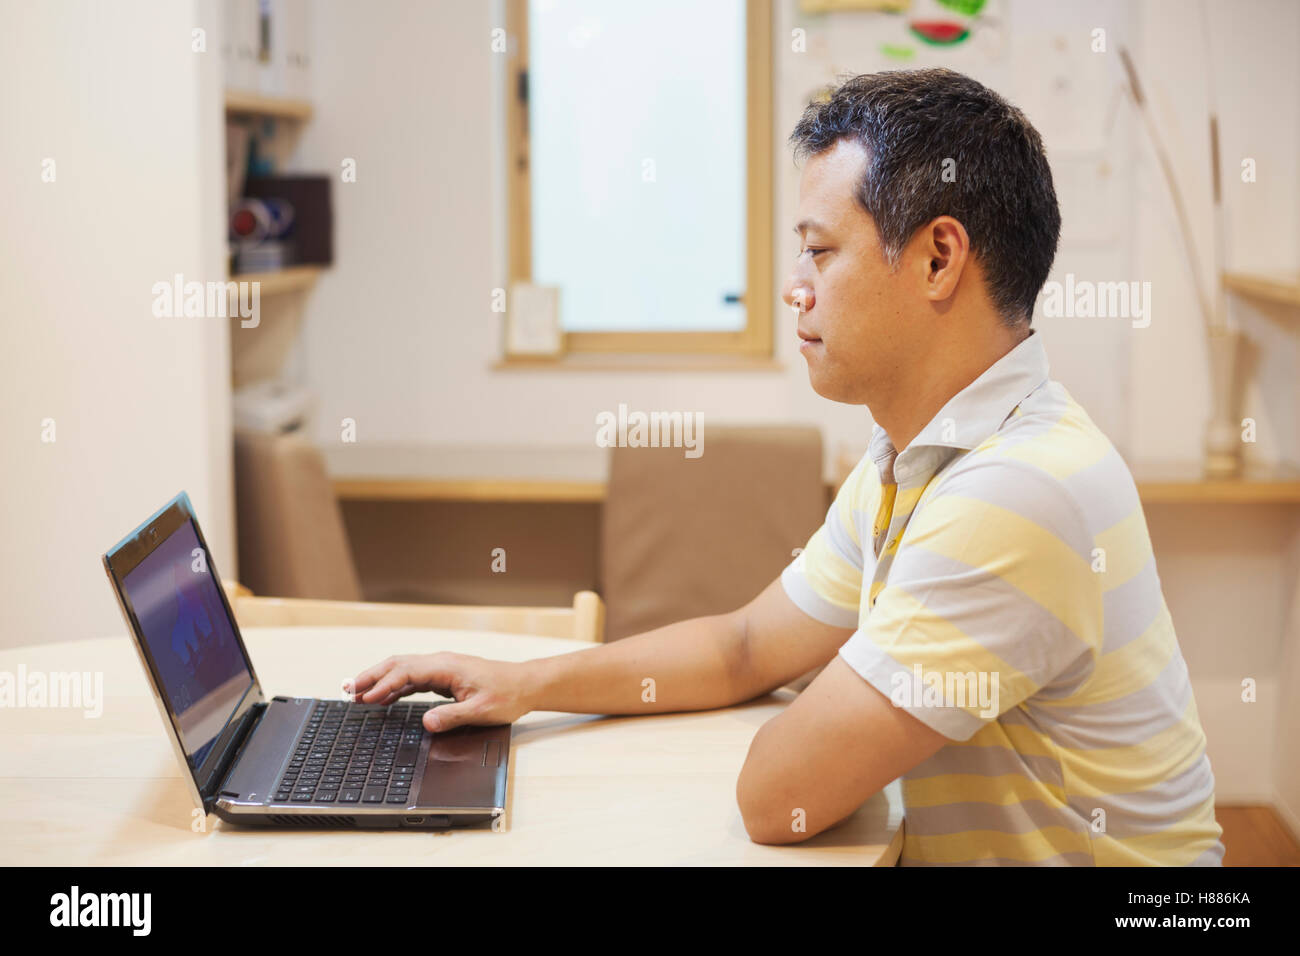 Family home. A man seated using a laptop working from home or dealing with online emails or business, administration, - Stock Image